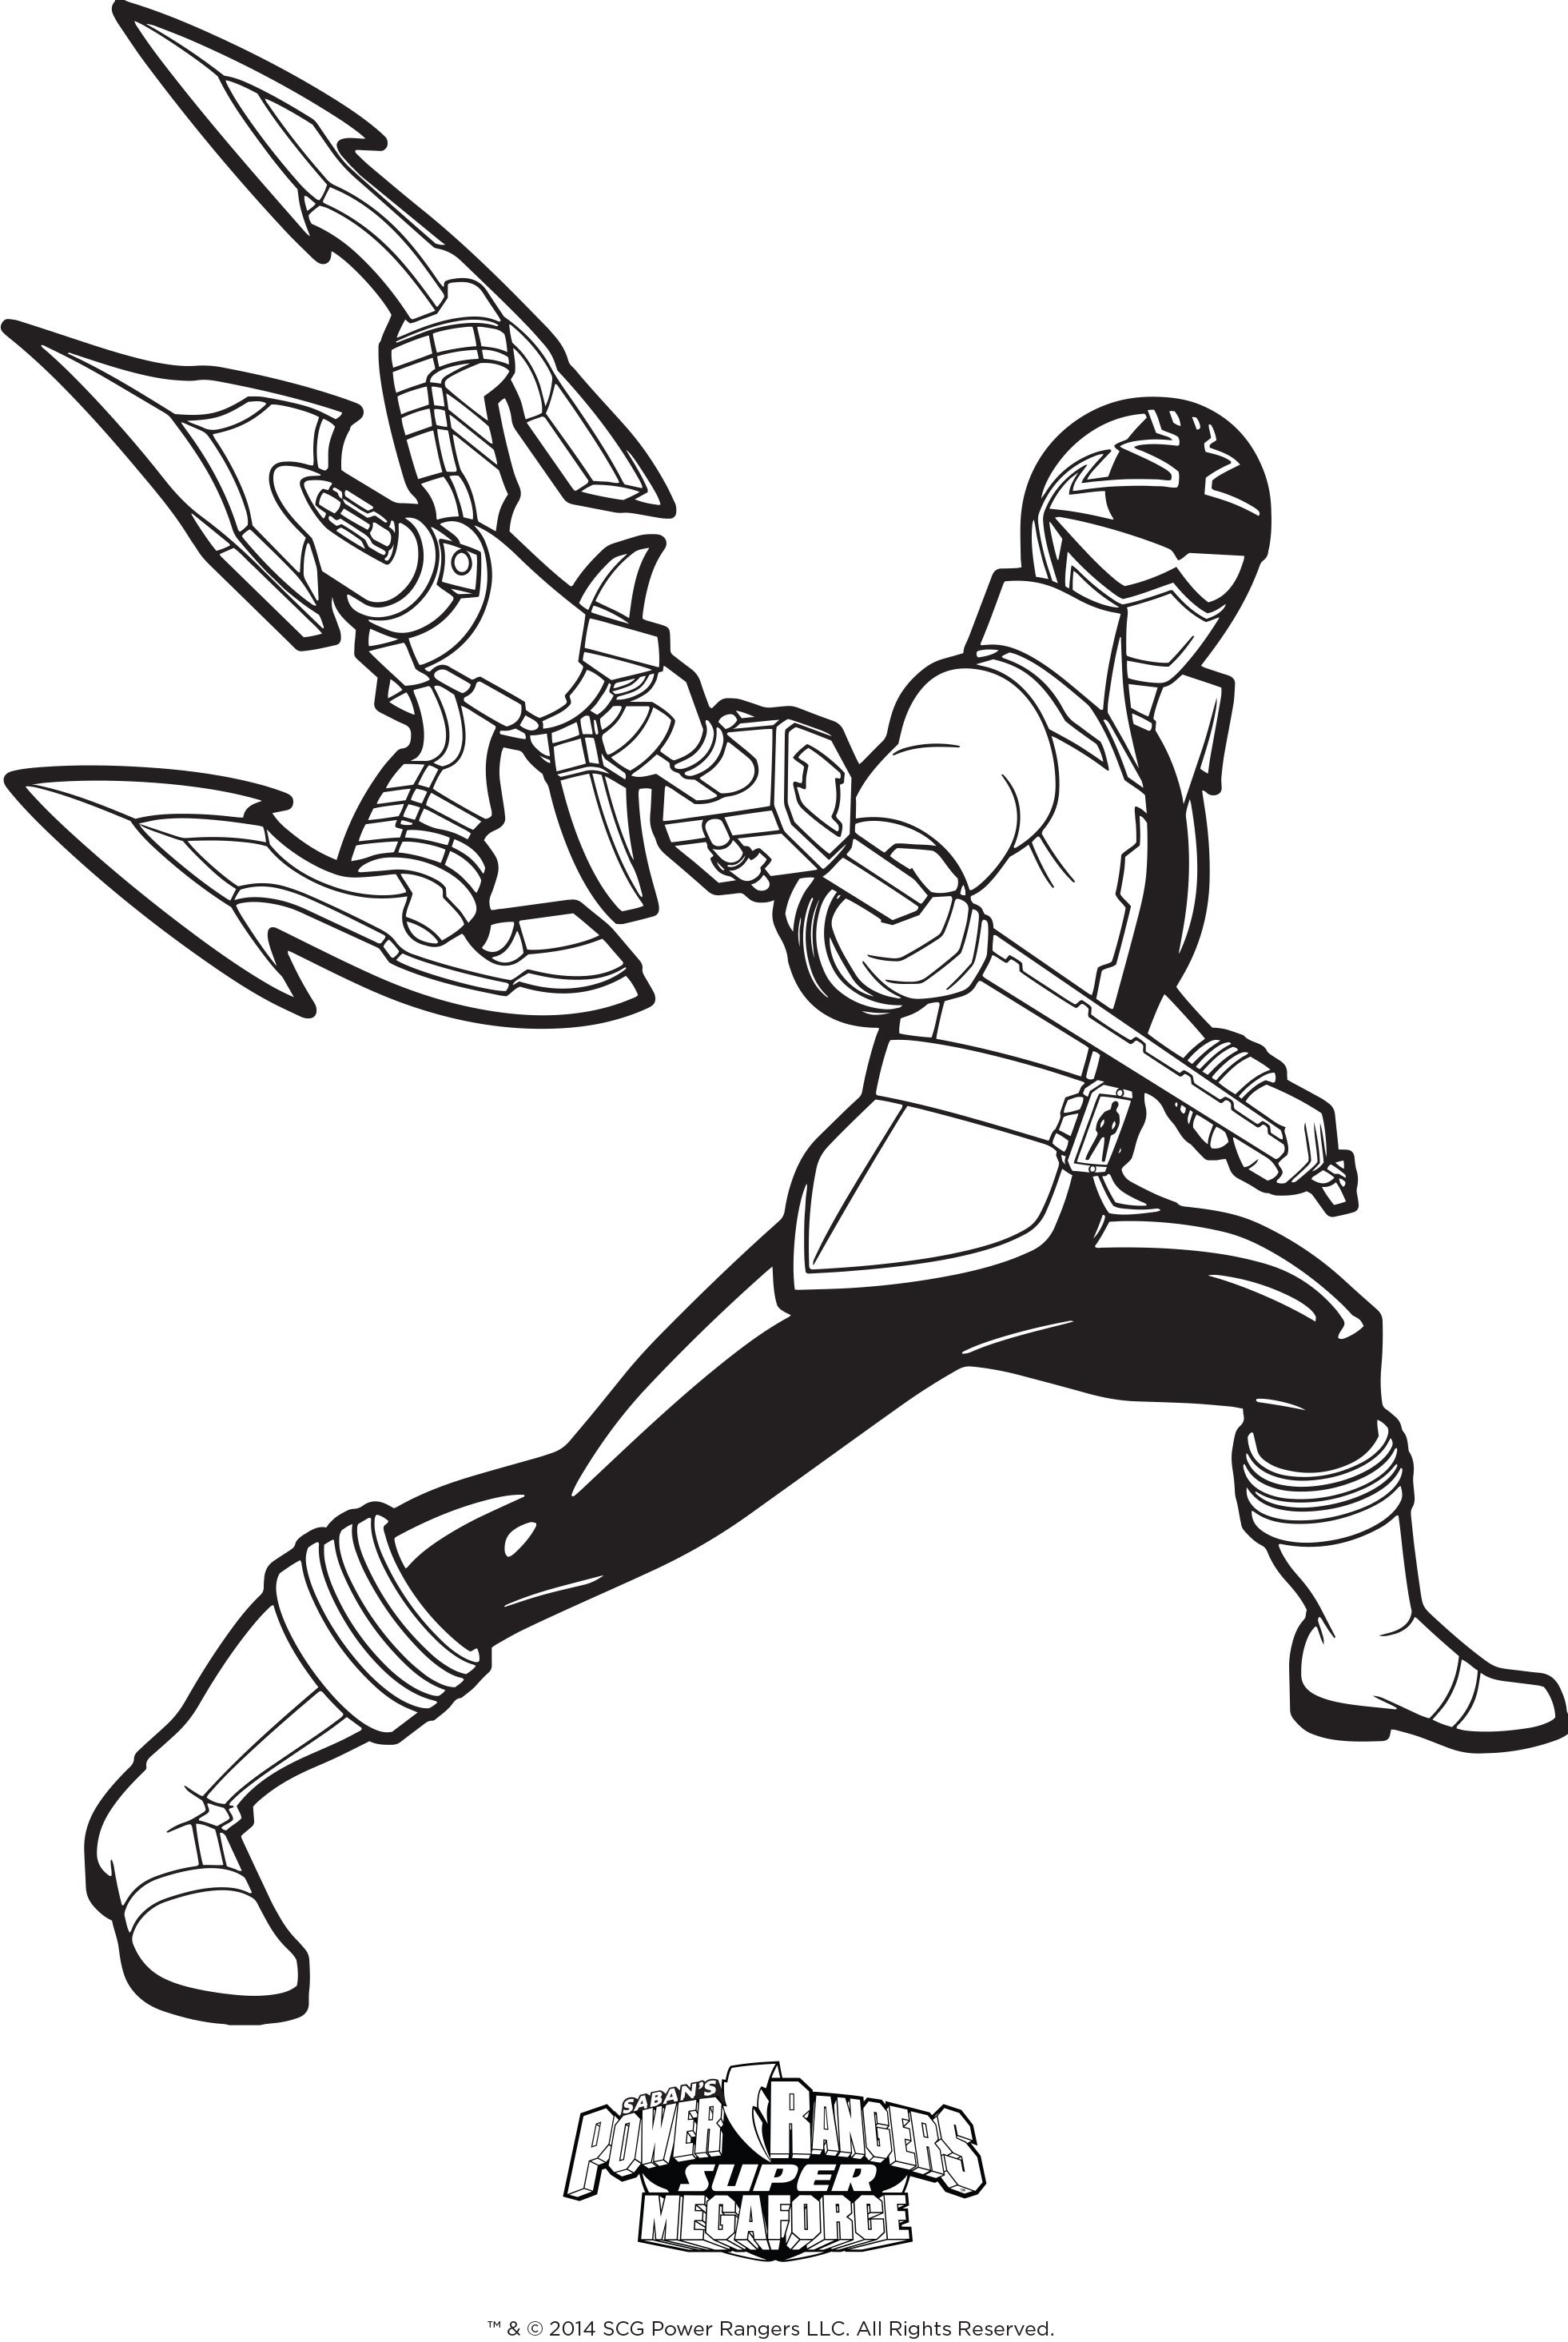 Power Ranger Mask Coloring Pages At Getcolorings